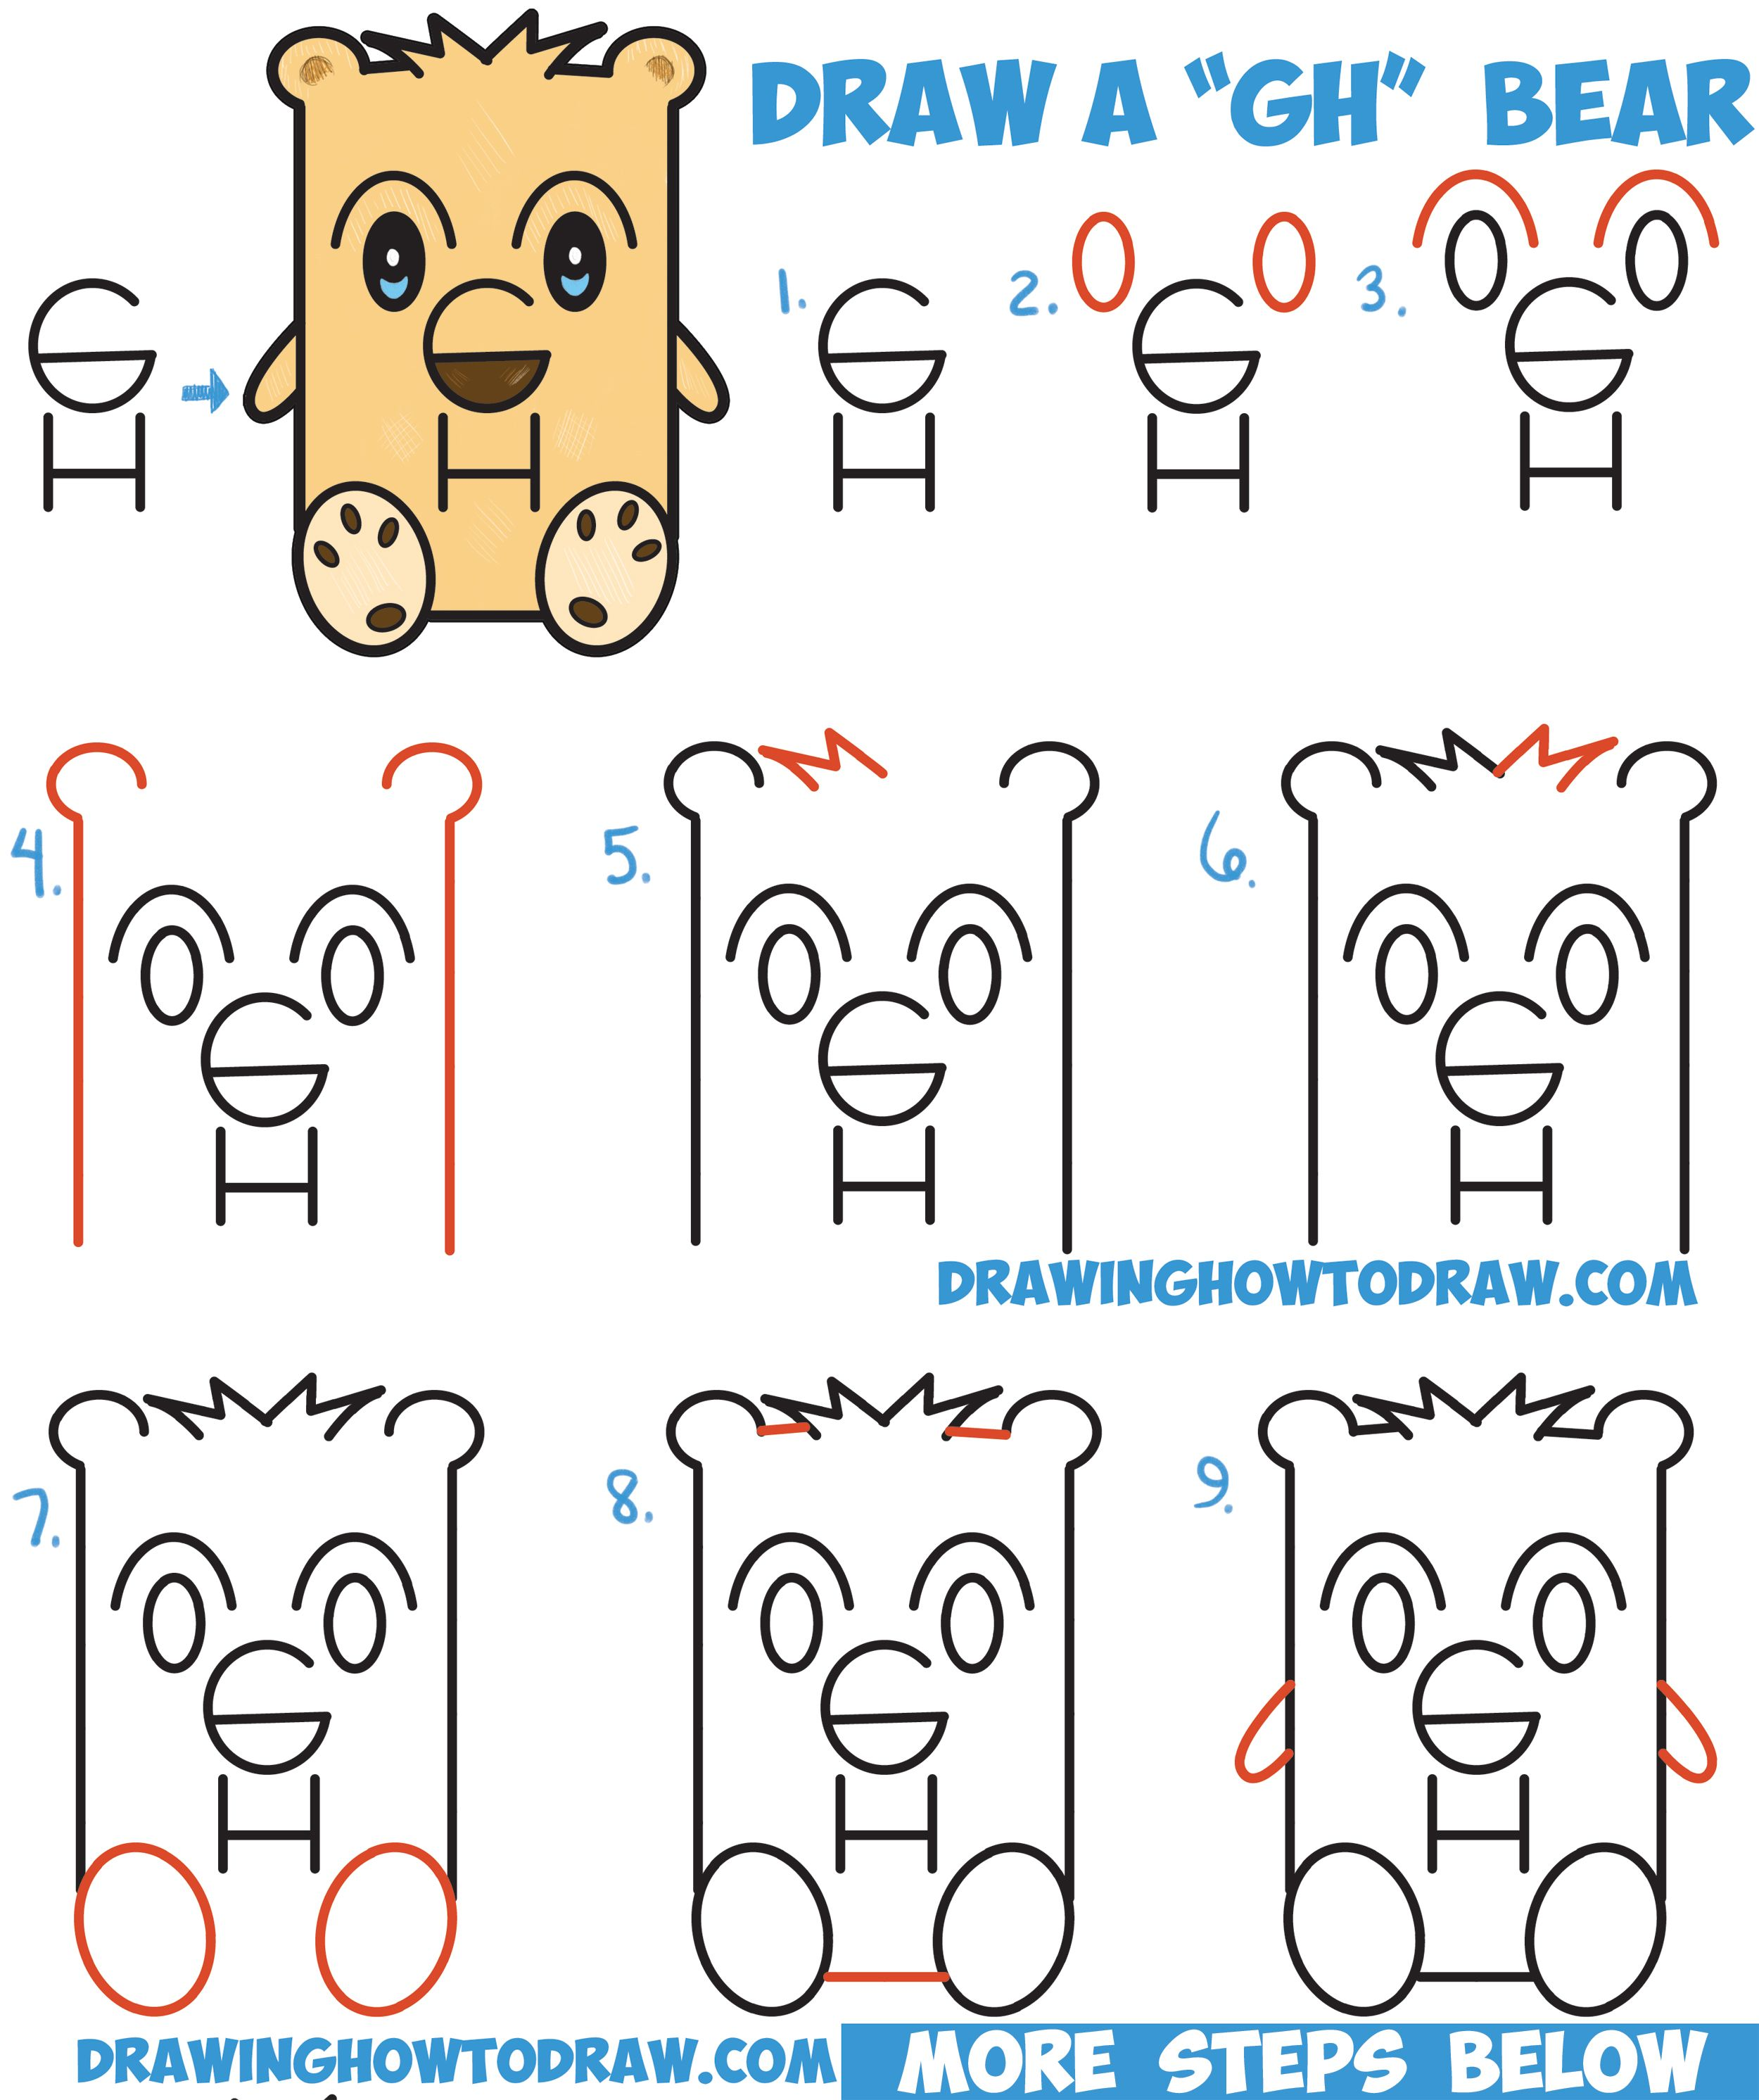 3 Letter Cartoon Characters : How to draw a cartoon bear from letters quot gh easy step by